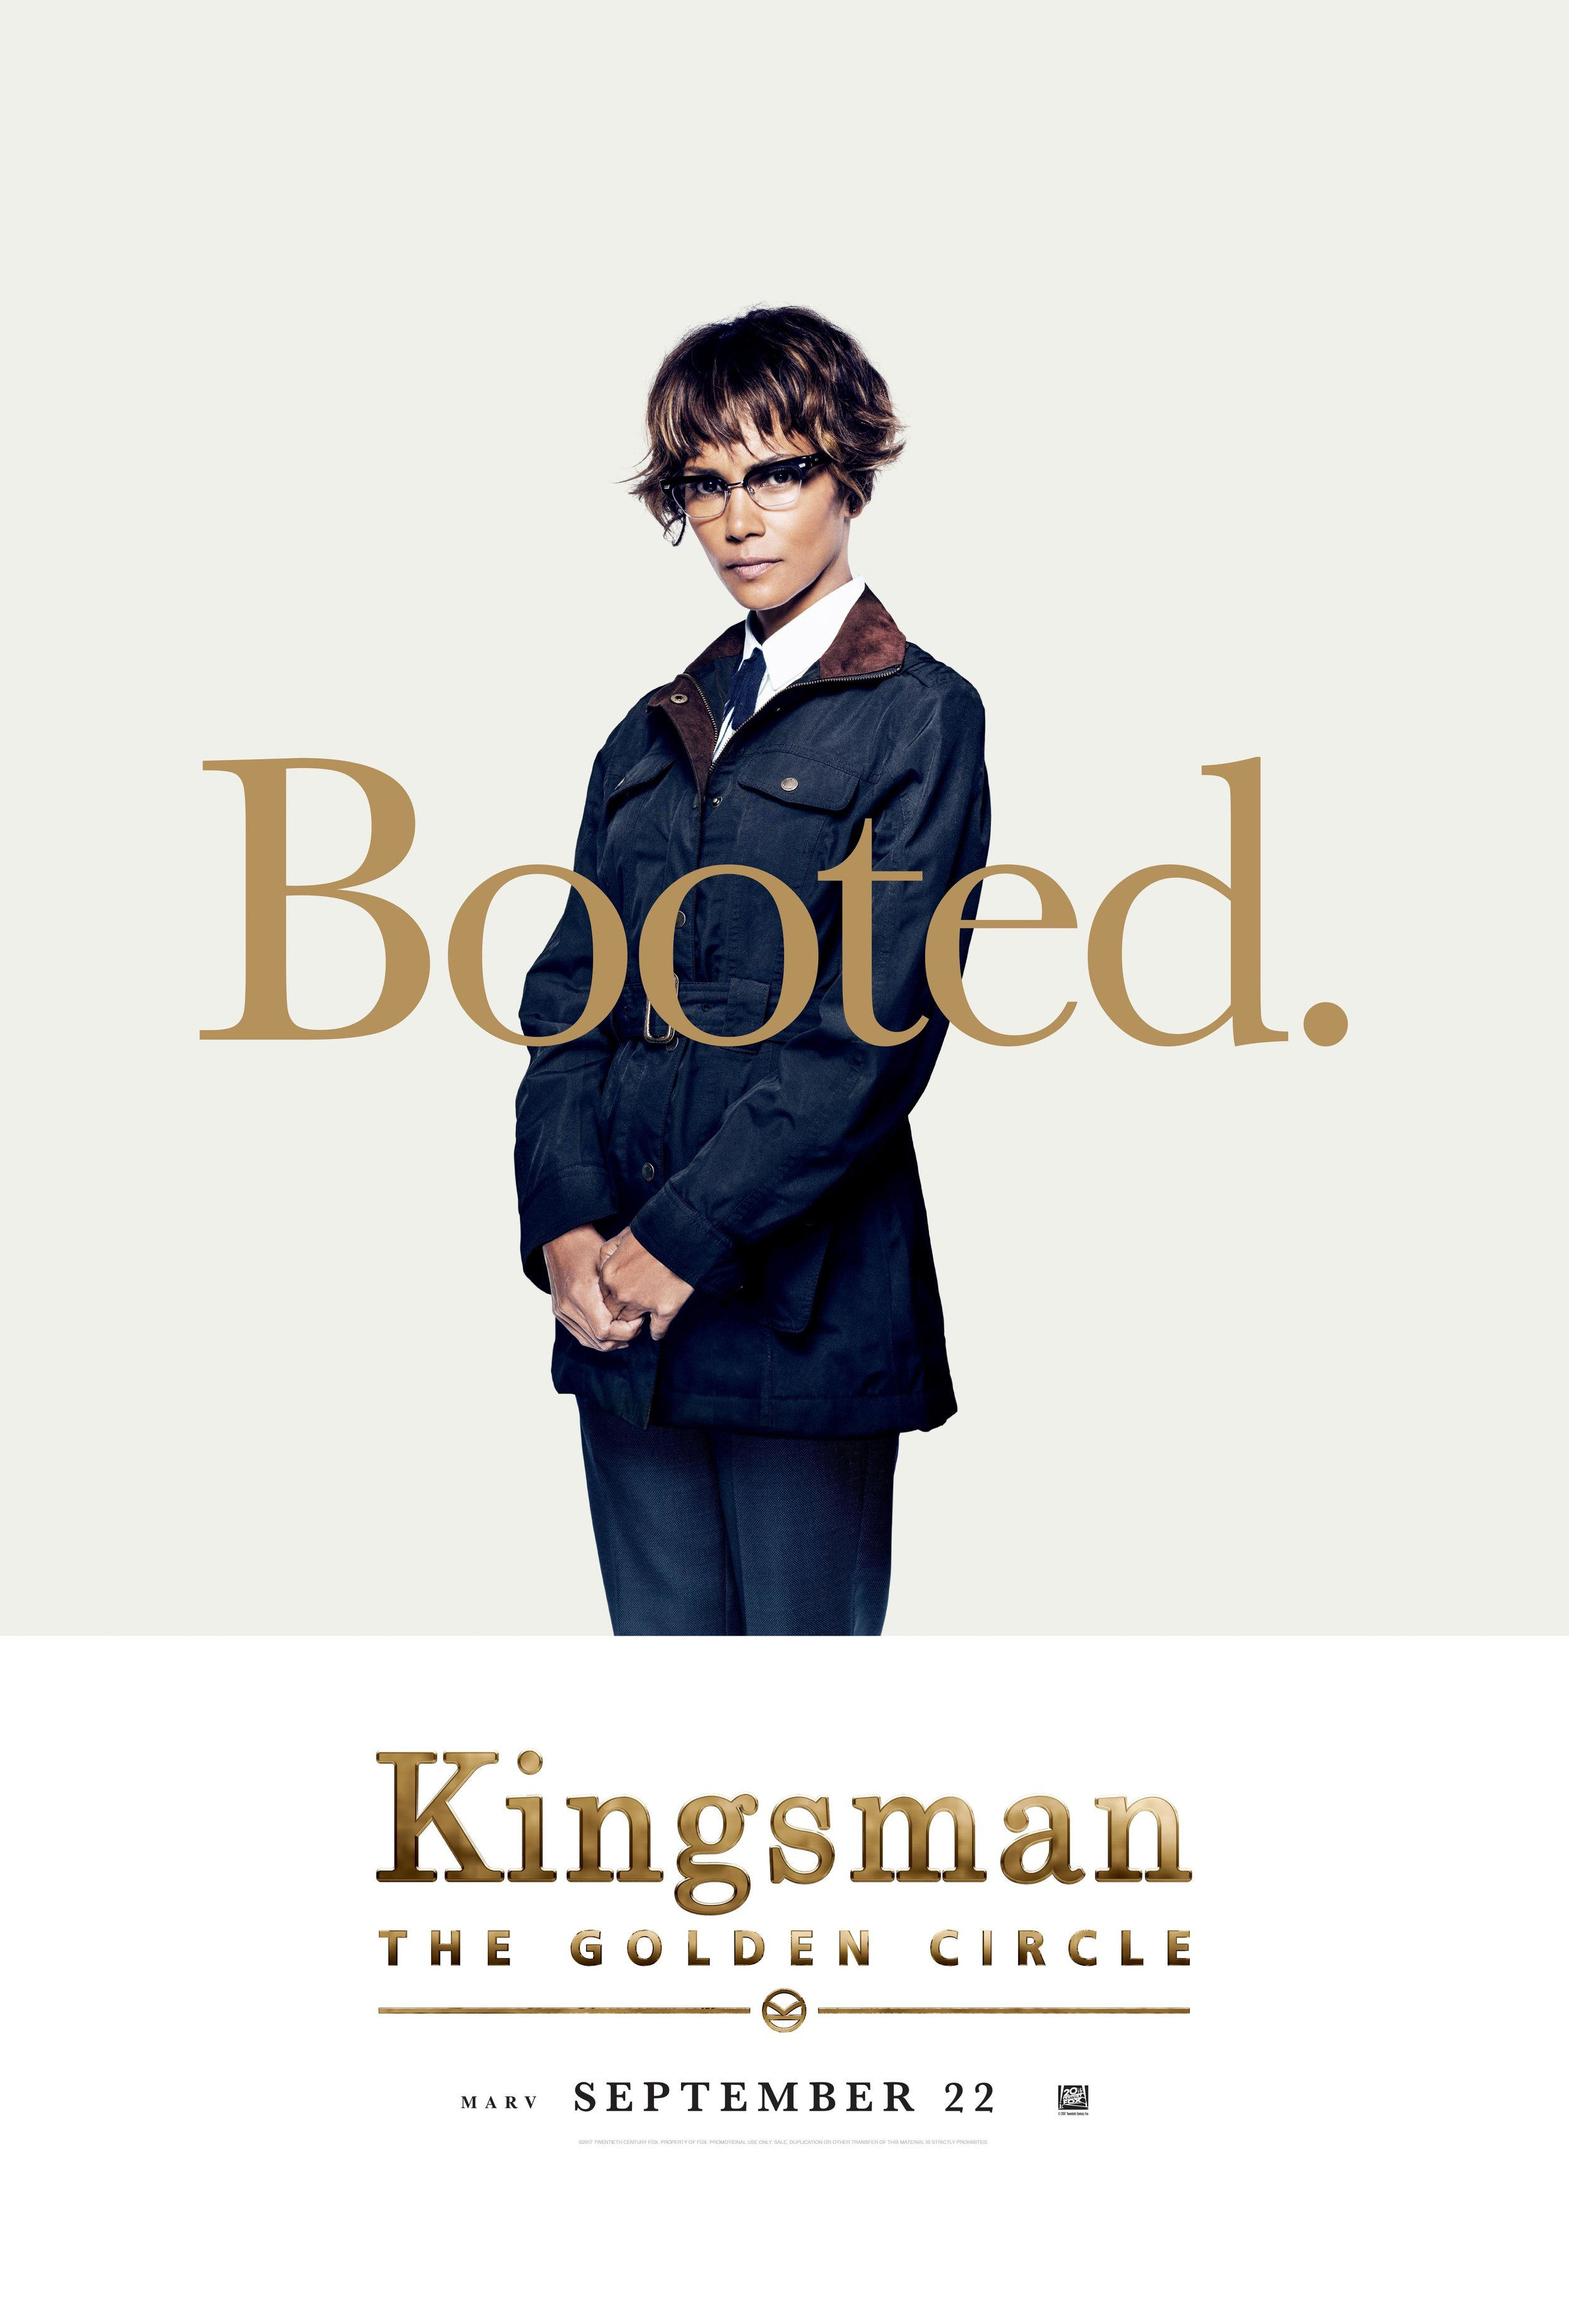 8-dapper-kingsman-the-golden-circle-character-posters-and-comic-con-panel-details8